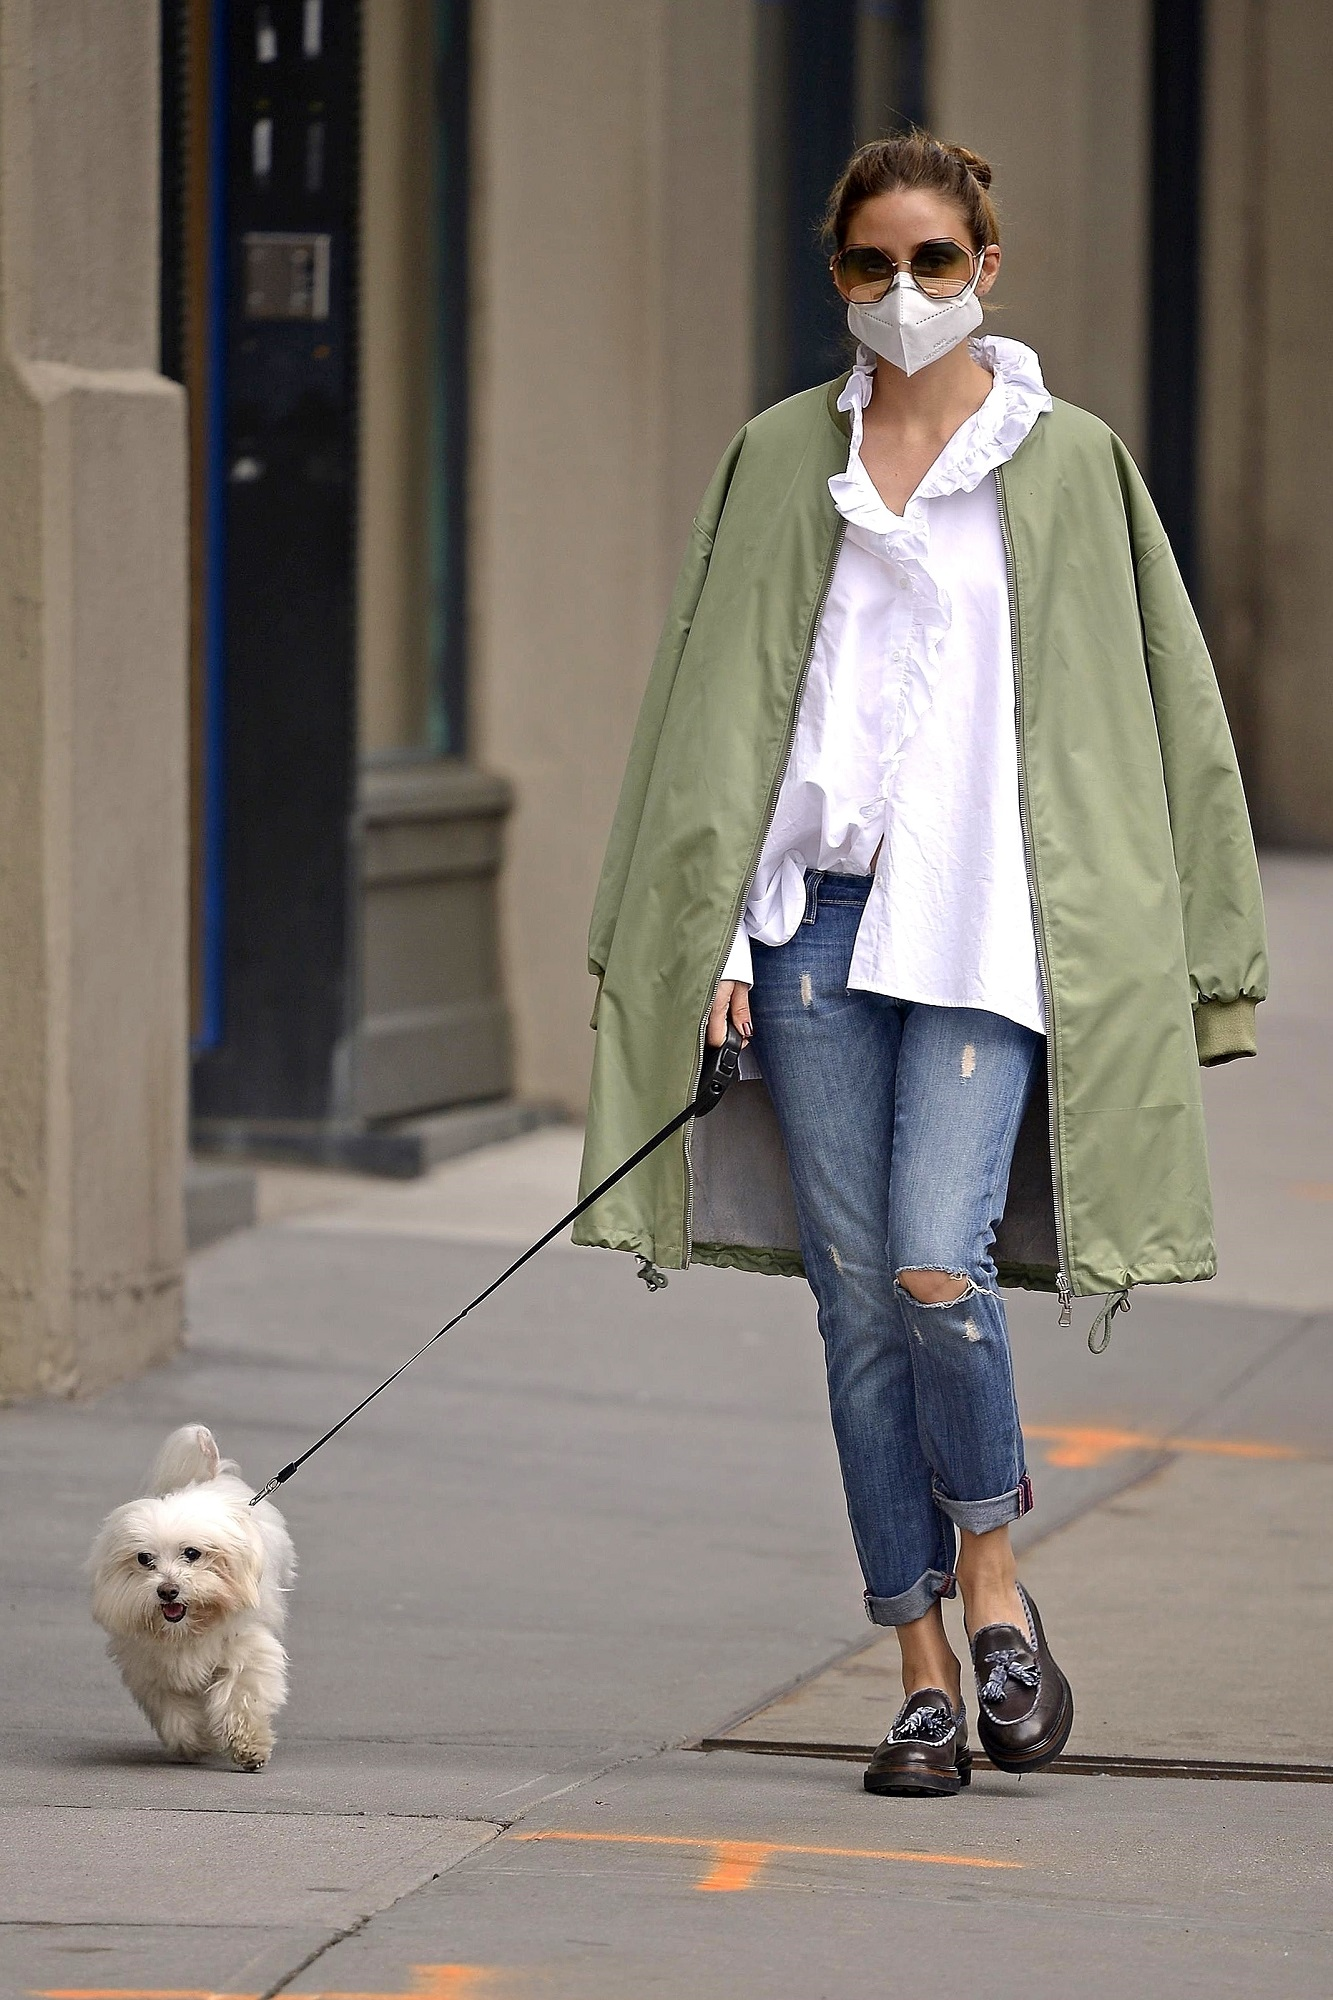 New York, NY  - *EXCLUSIVE*  - Fashion guru Olivia Palermo seen walking her dog Mr. Butler while wearing a mask during the Coronavirus pandemic in New York City.  Olivia looked casual chic in boyfriend button up tee with jeans and a trendy parka style bomber jacket thrown over her shoulders.  Olivia noticeably wasn't wearing her wedding ring, are her and husband Johannes Huebl on rocky terms during this quarantine?  BACKGRID USA 19 MAY 2020,Image: 520657867, License: Rights-managed, Restrictions: RIGHTS: WORLDWIDE EXCEPT IN AUSTRIA, GERMANY, SWITZERLAND, Model Release: no, Credit line: BACKGRID / Backgrid USA / Profimedia